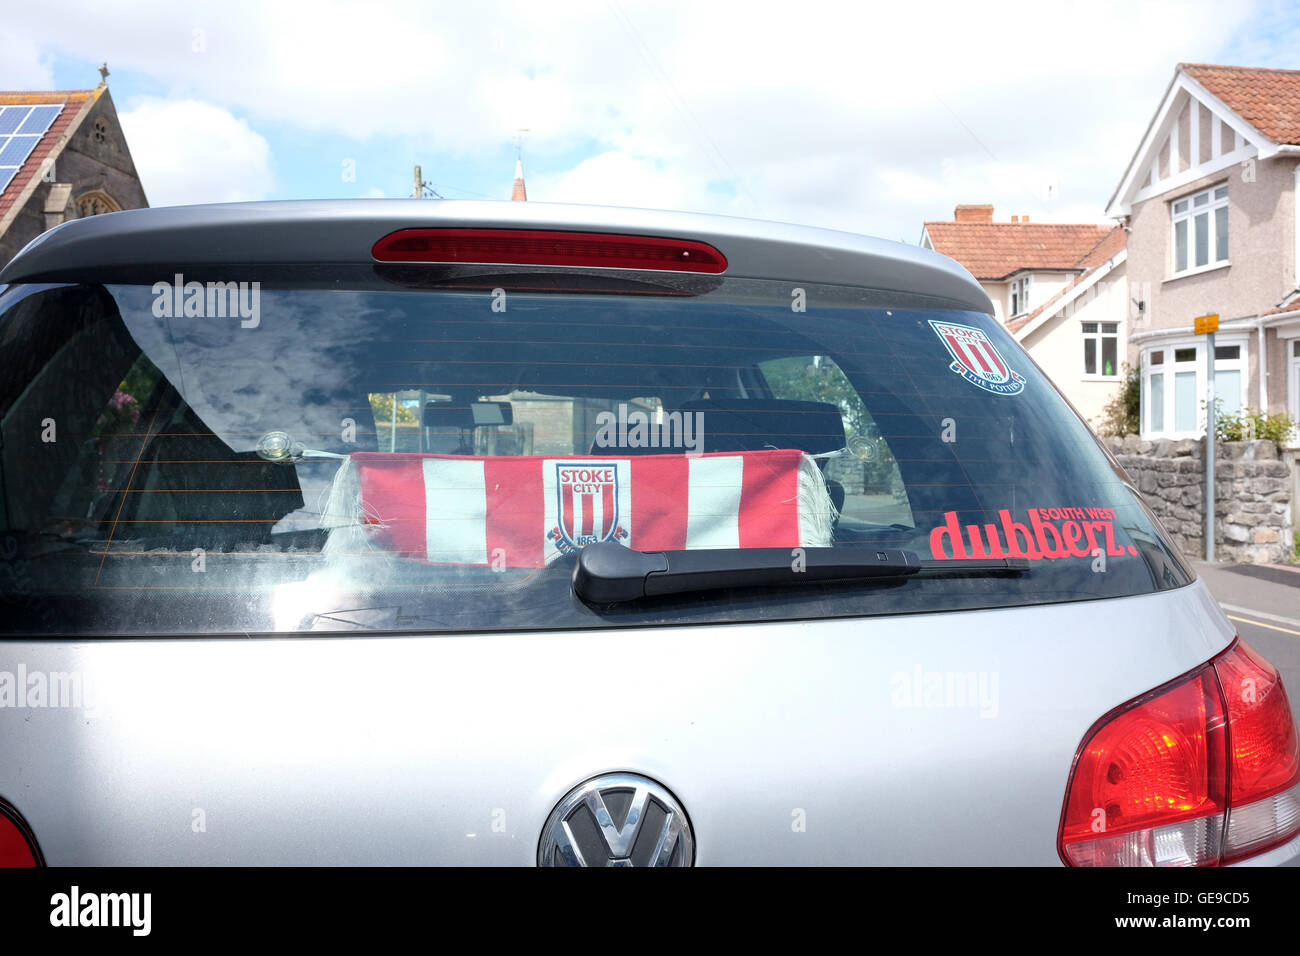 23rd July 2016 -  Stoke City football scarf in the rear window of  a Volkswagen Polo car in the Somerset village - Stock Image